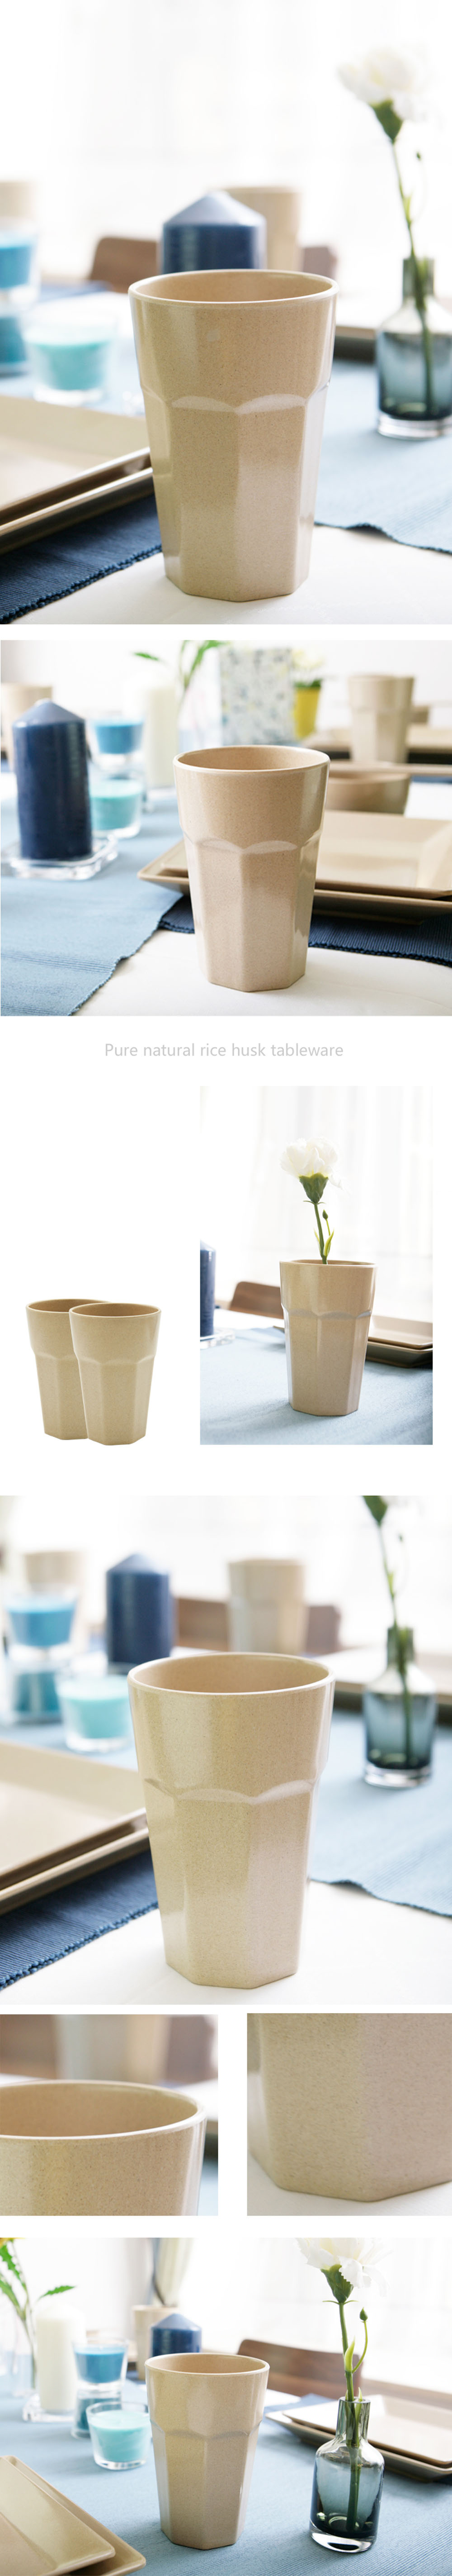 Water Cup Rice Husk Tableware